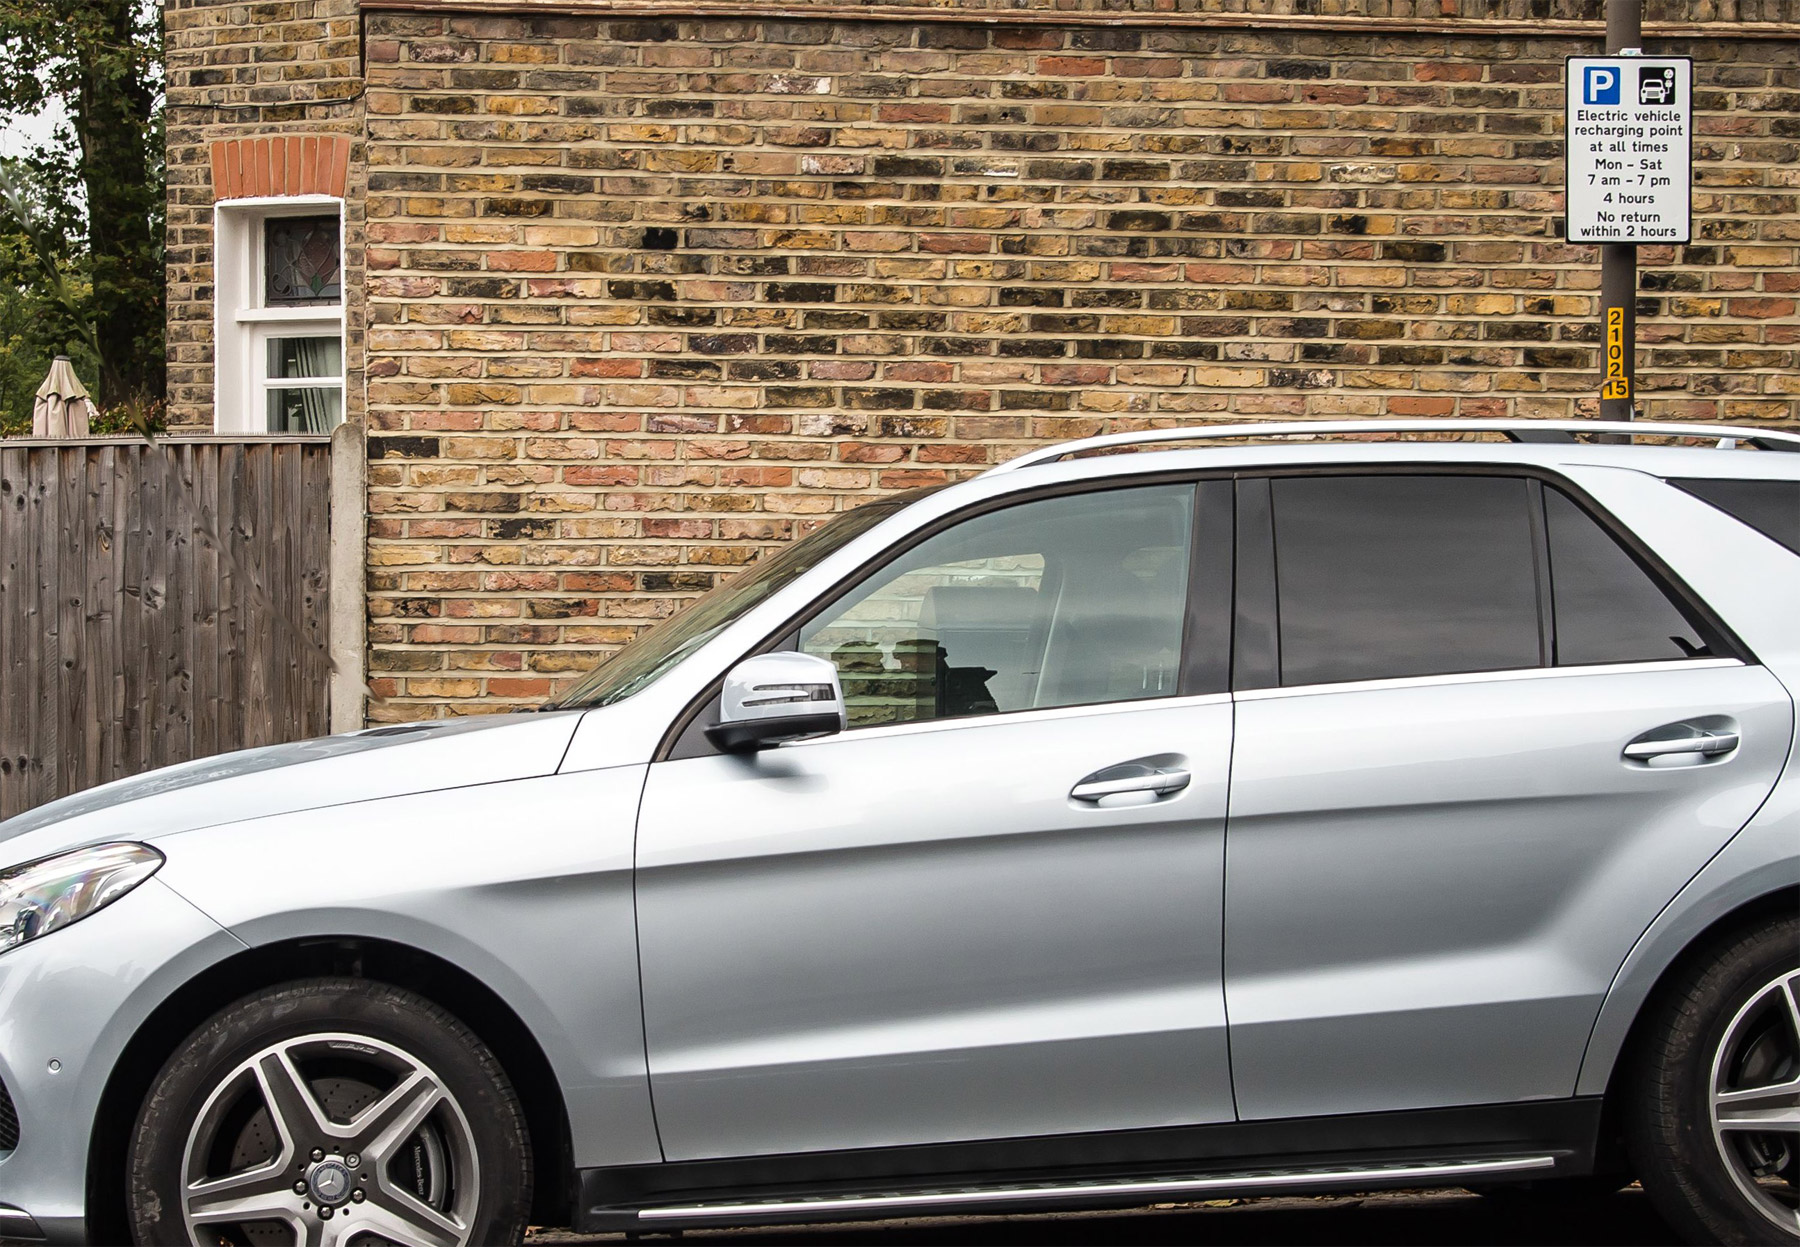 Mercedes benz gle 350d suv 4matic amg line road test for Performance mercedes benz st catharines